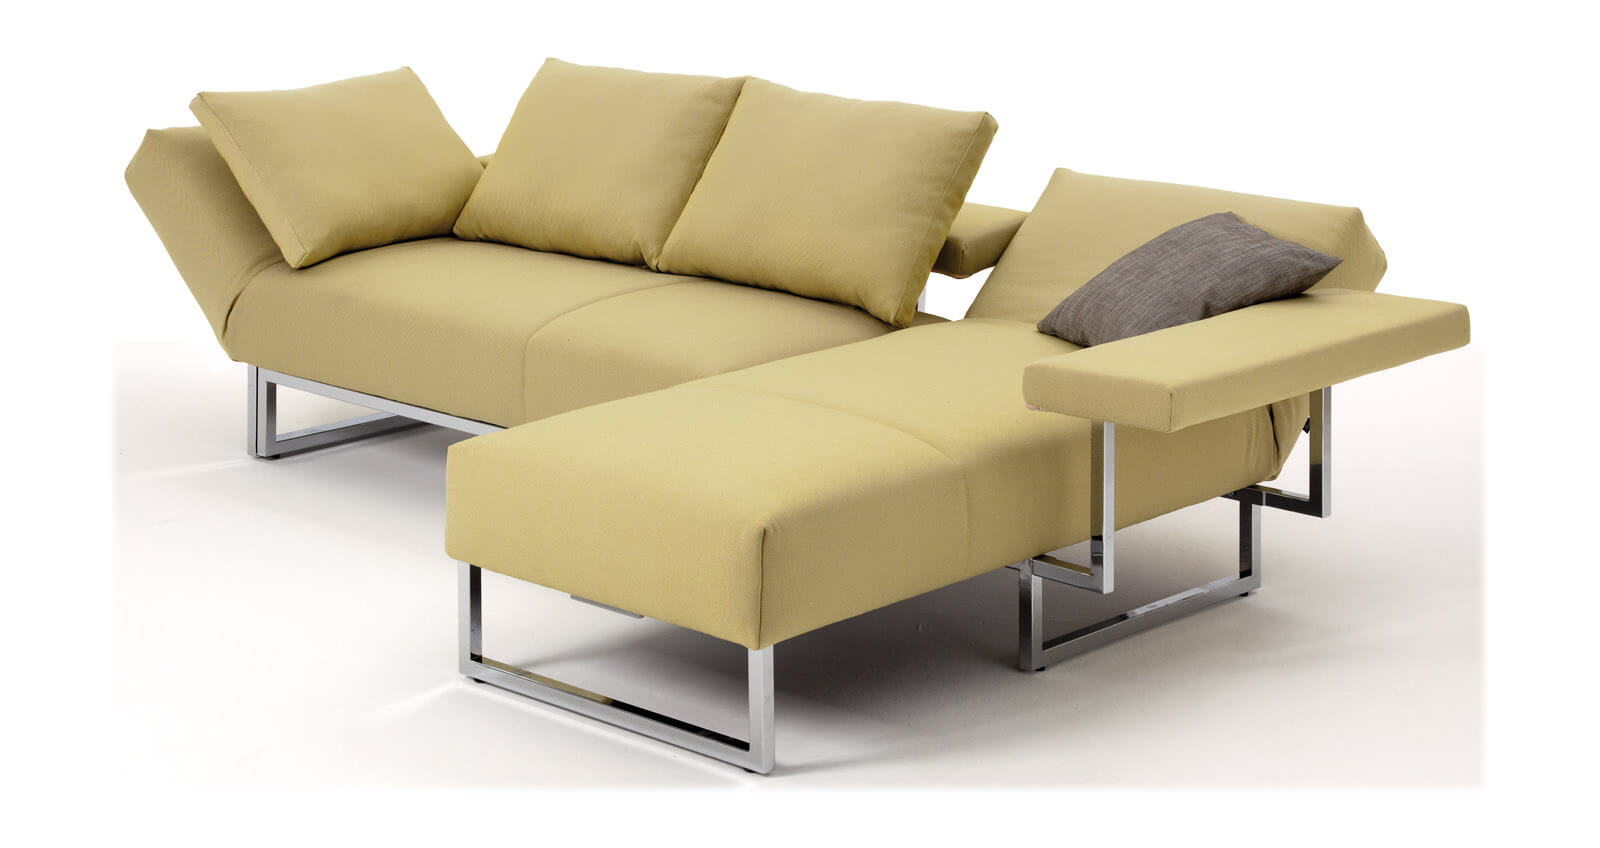 Sofa Hohe Lehne. vibieffe class high back sofa contemporary furniture. quadro hocker ...